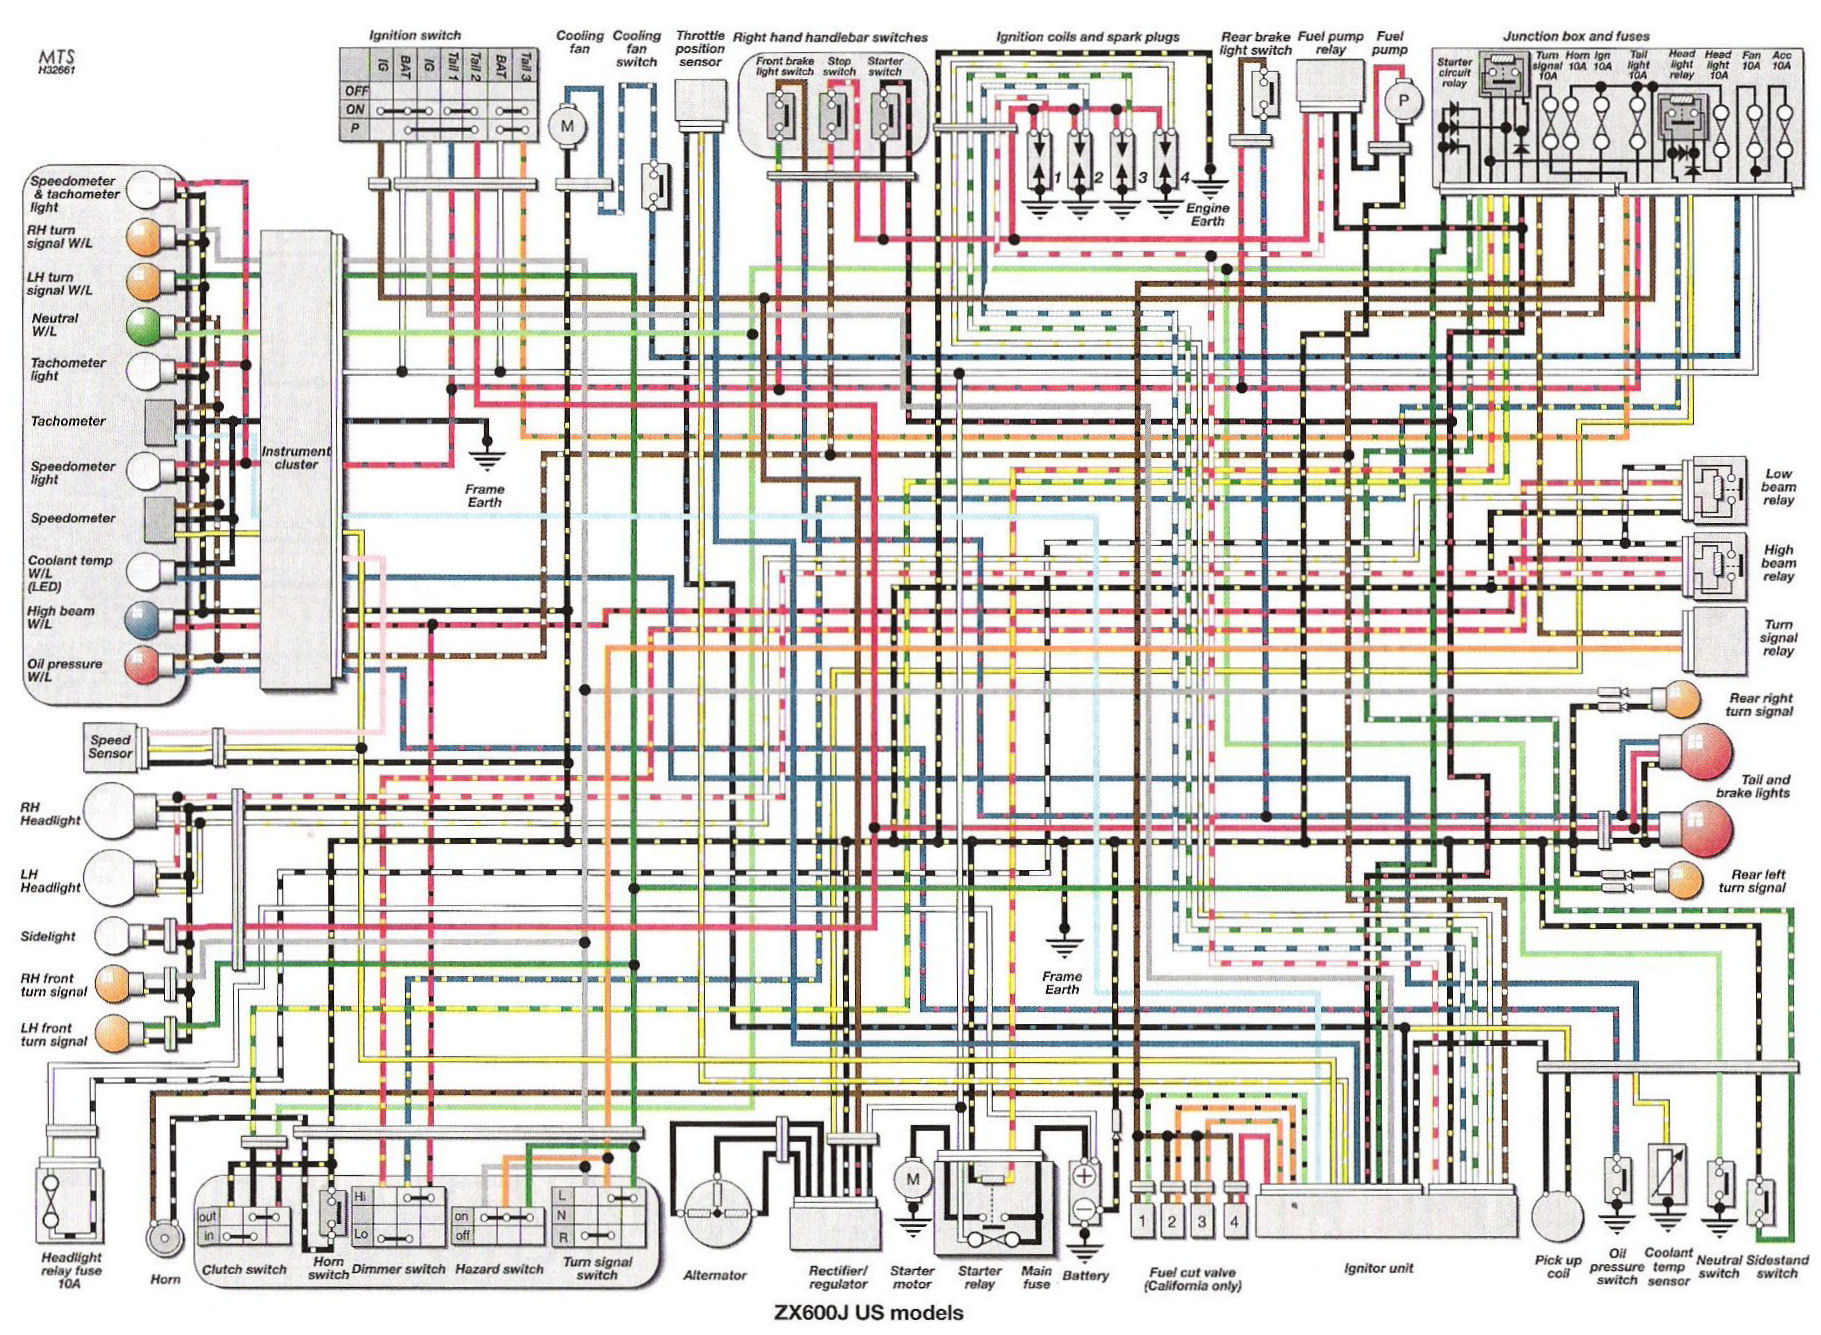 cbr 600rr wiring diagram 2005 cbr 1000 wire diagram diagram get image about wiring 2005 cbr 1000 wire diagram